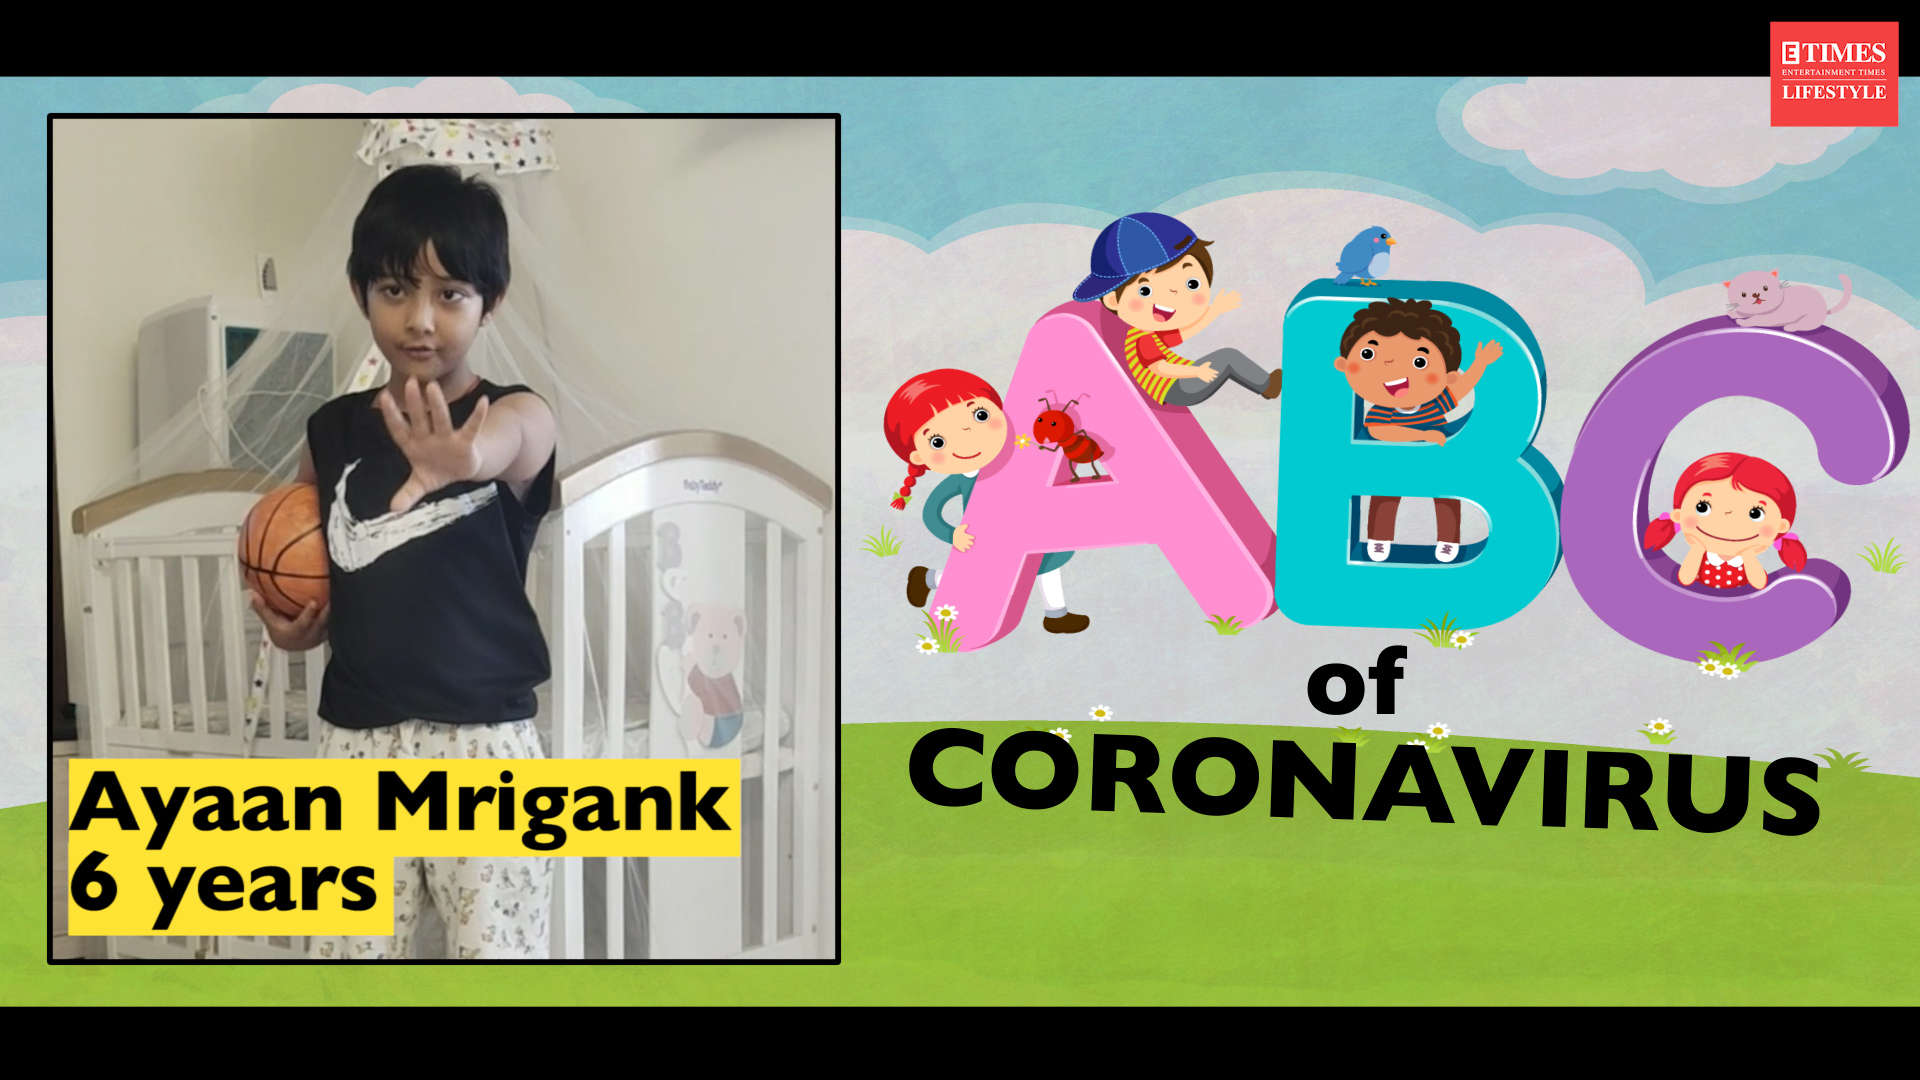 abc-of-coronavirus-as-explained-by-the-kids